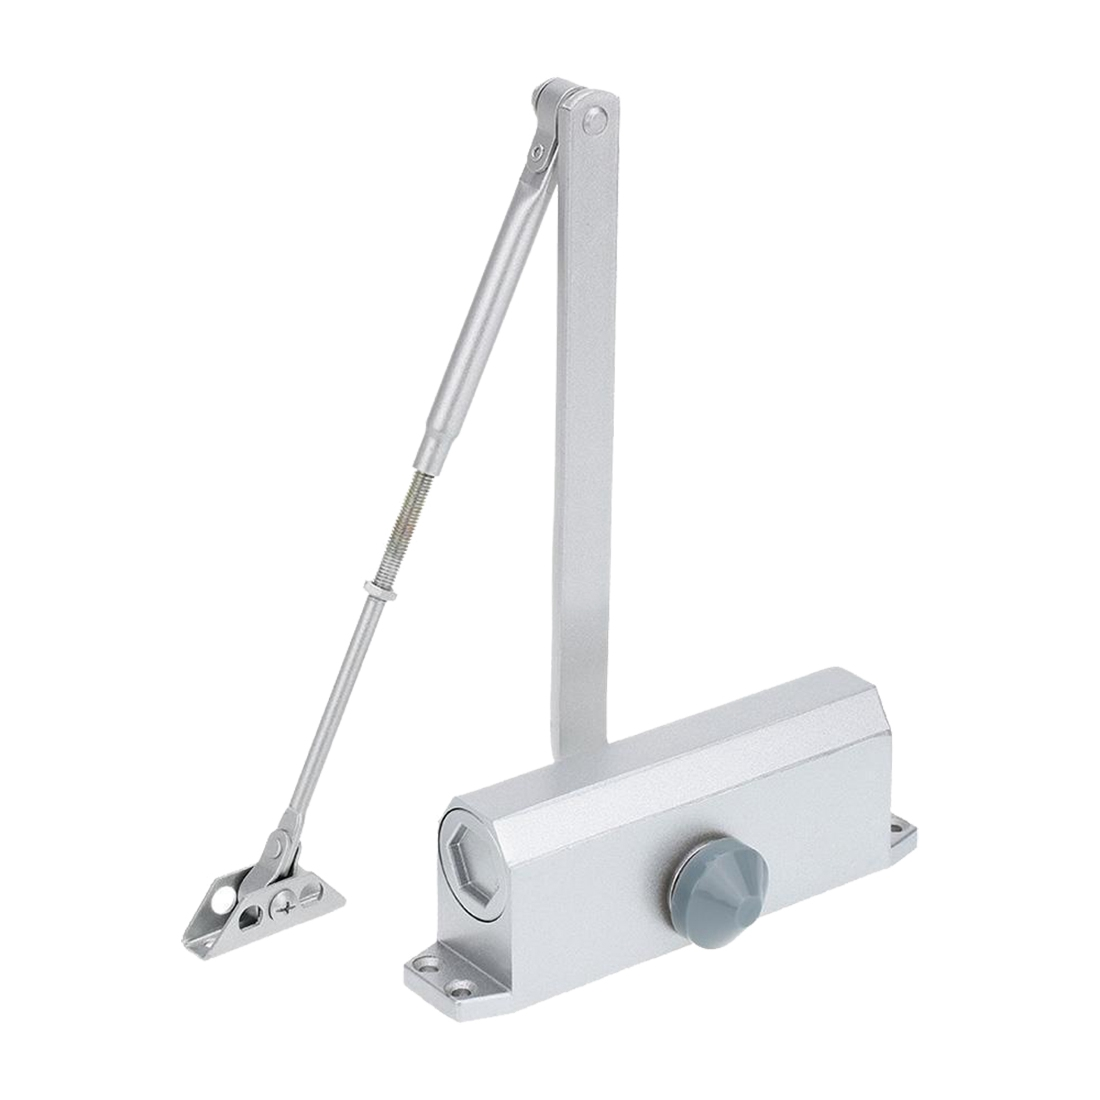 65-85KG Automatic Heavy Duty FIRE RATED Door Closer 45 65kg automatic heavy duty fire rated door closer 90 degrees door closer spring automatic door closer for home & garden